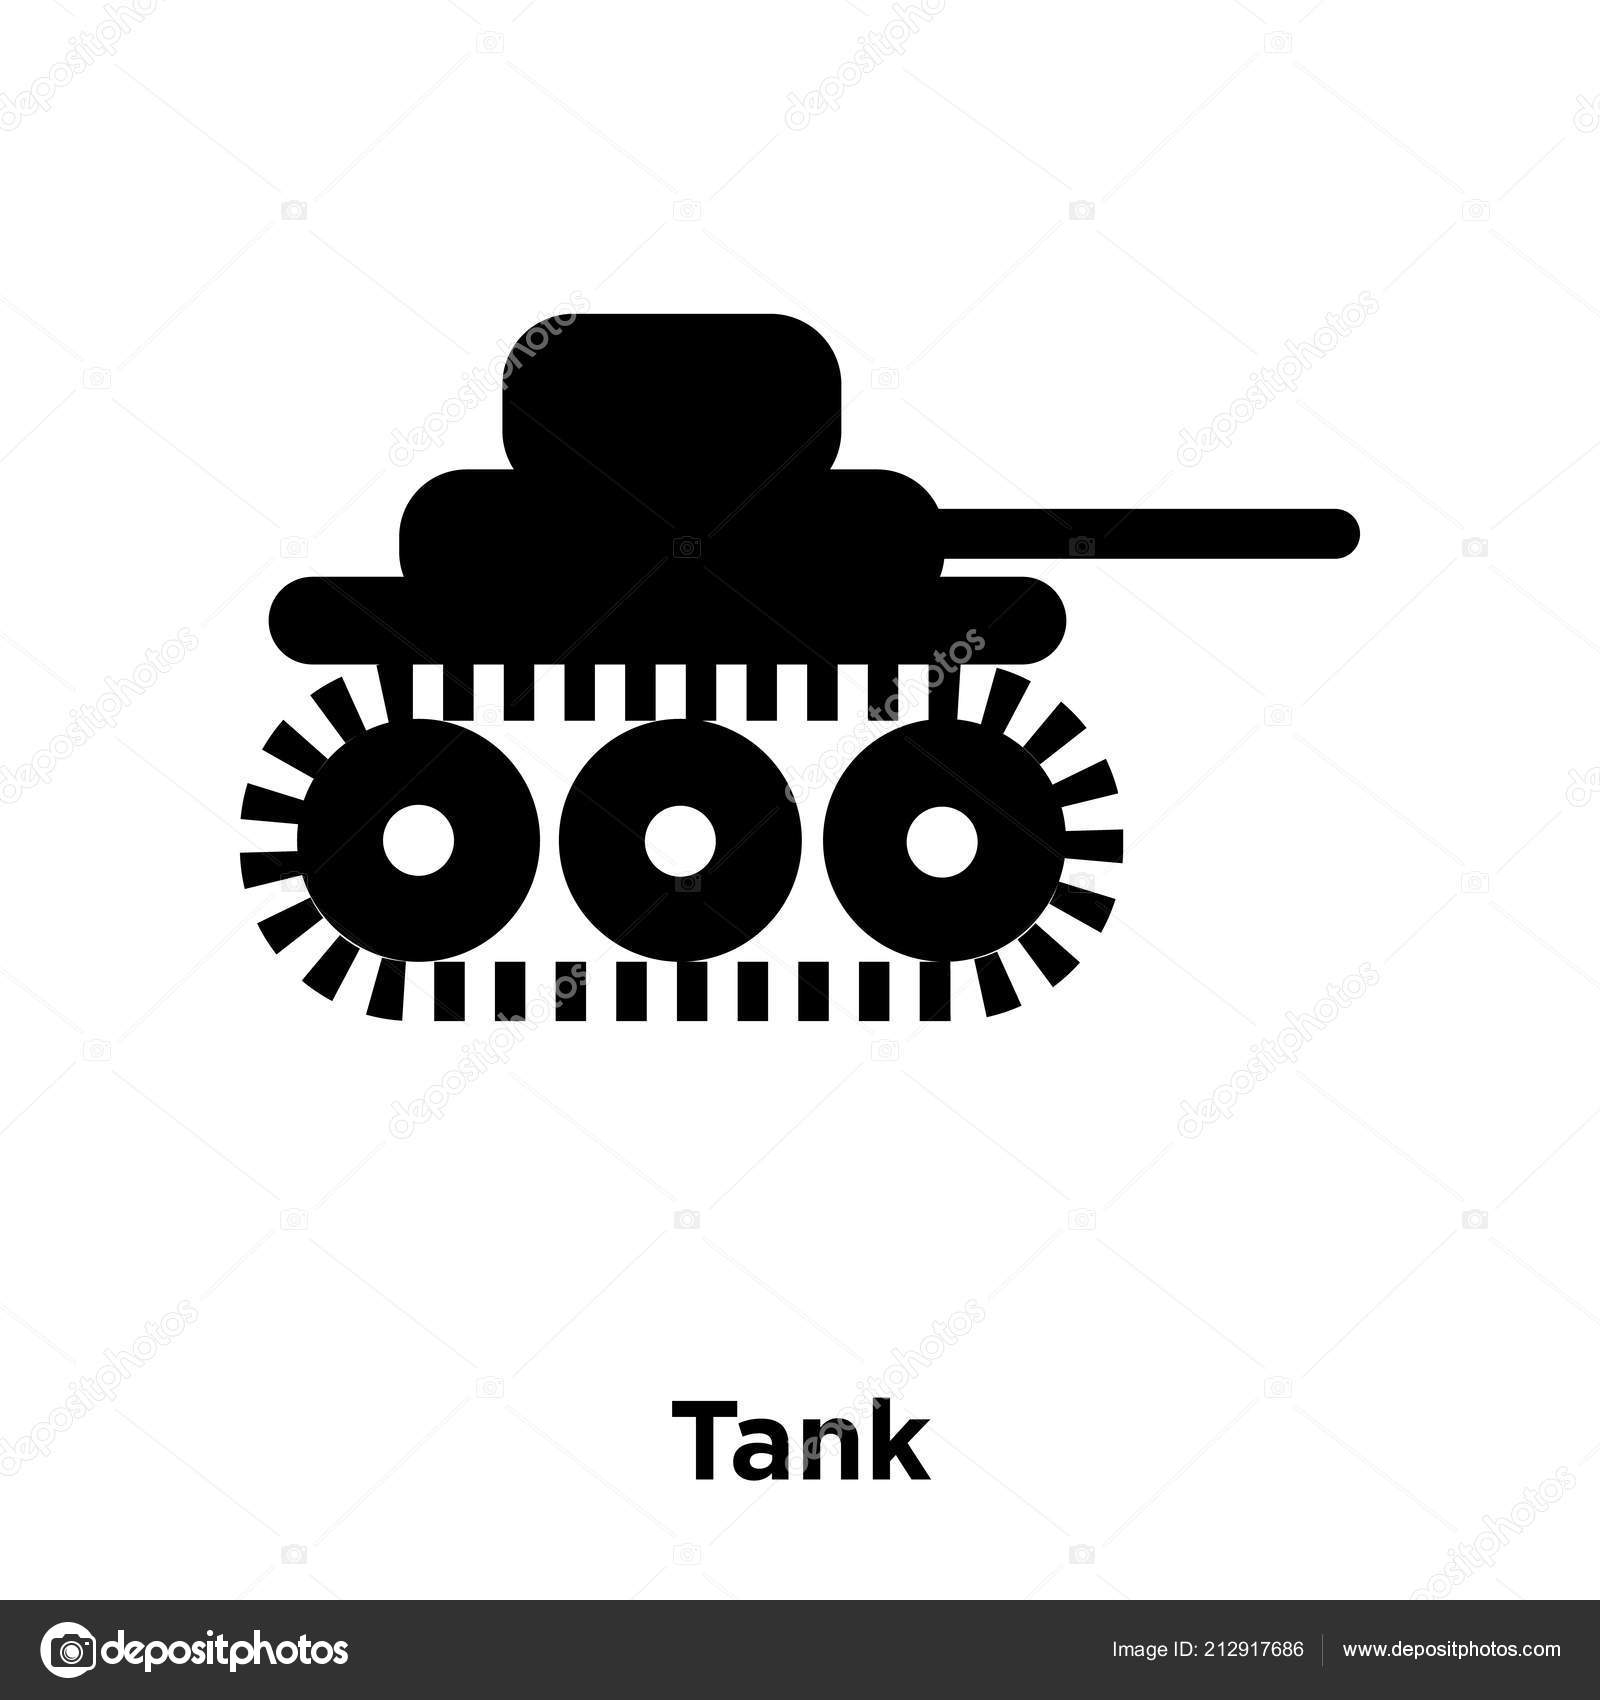 tank icon vector isolated white background logo concept tank sign stock vector c topvectorstock 212917686 depositphotos